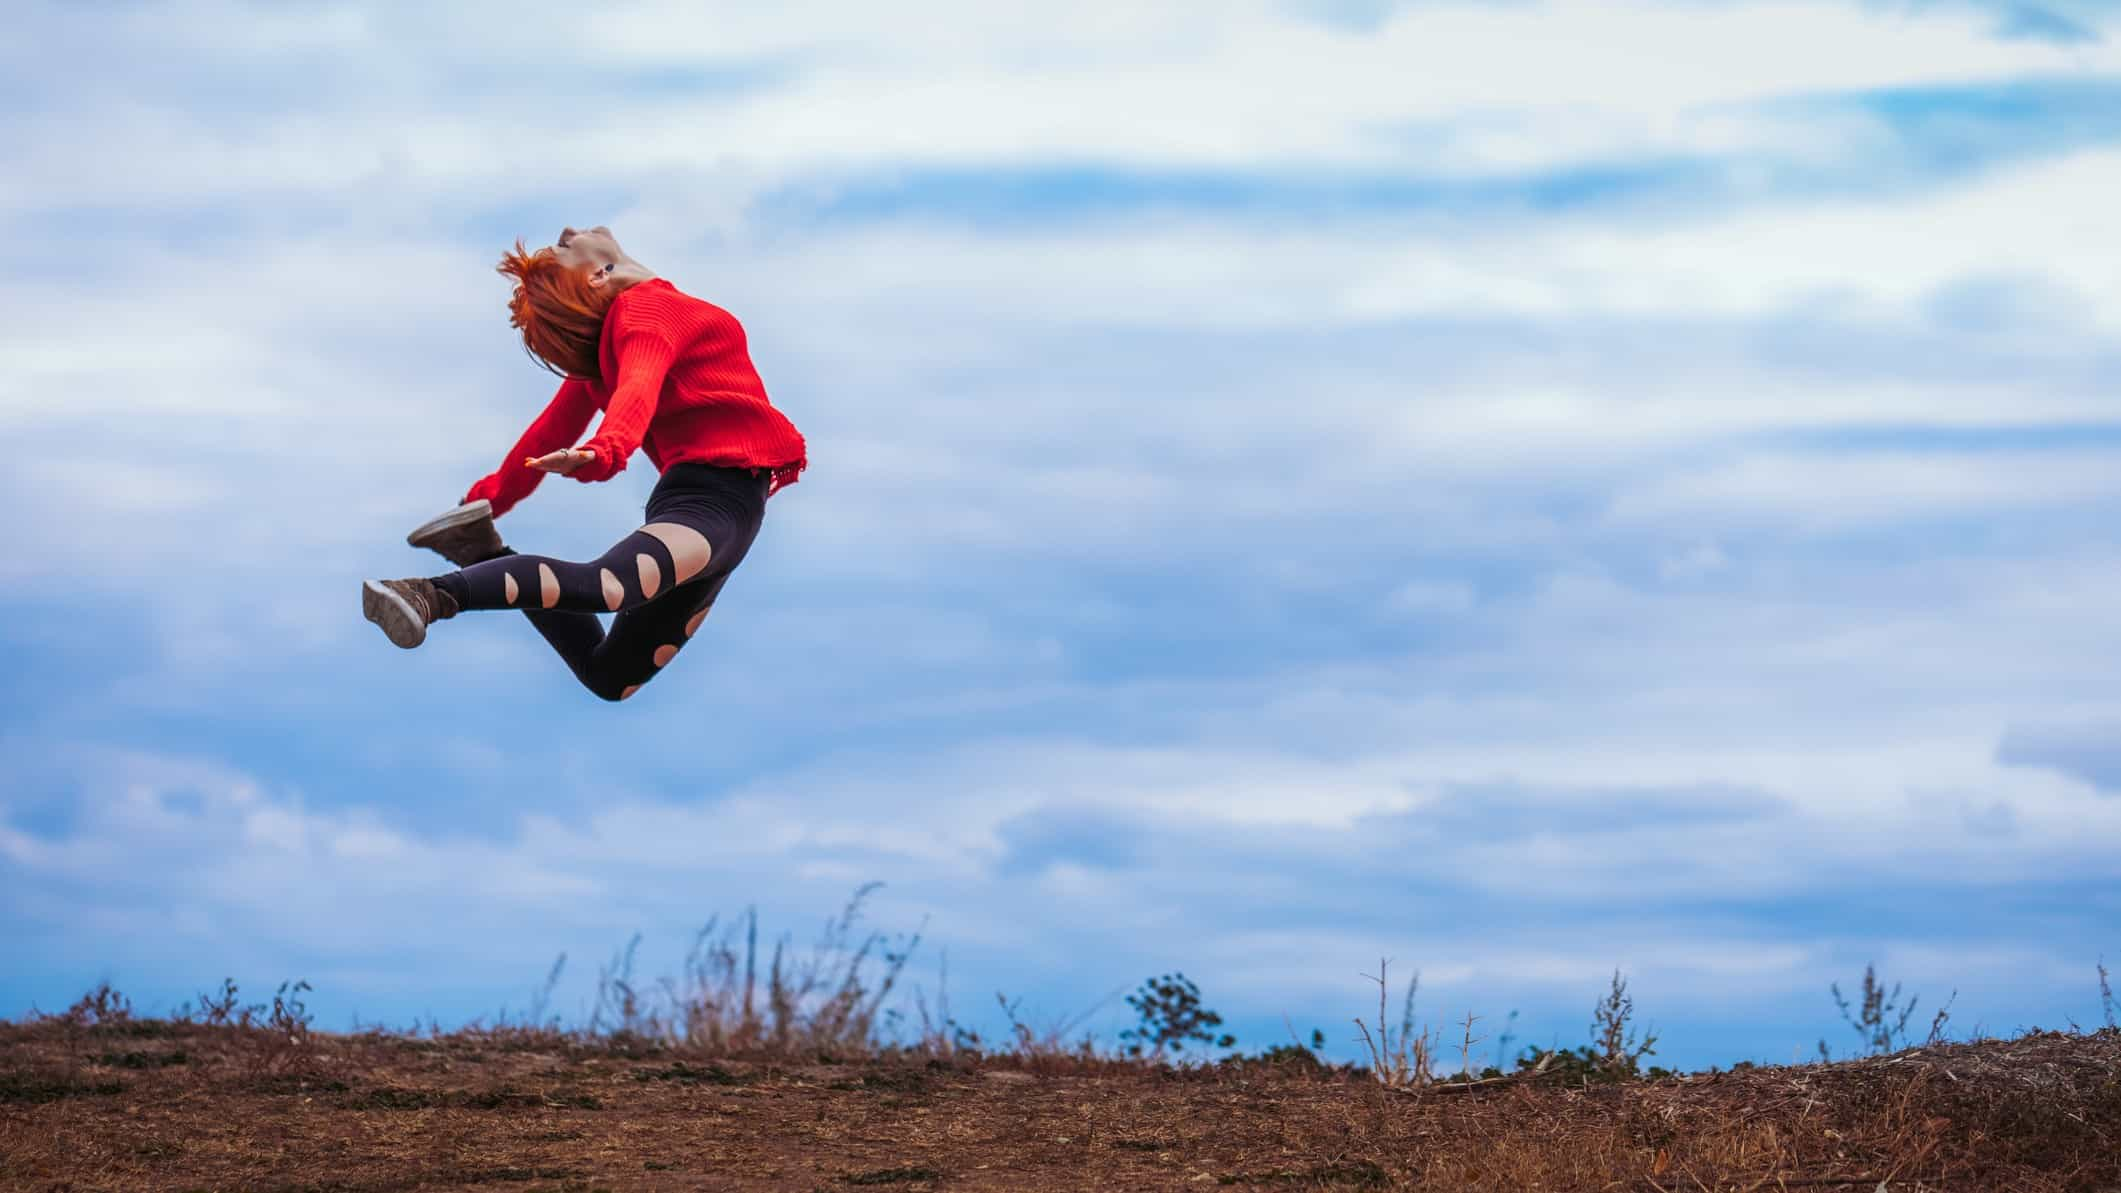 A woman wearing a red jumper leaps into the air with sky behind her and earth beneath her.